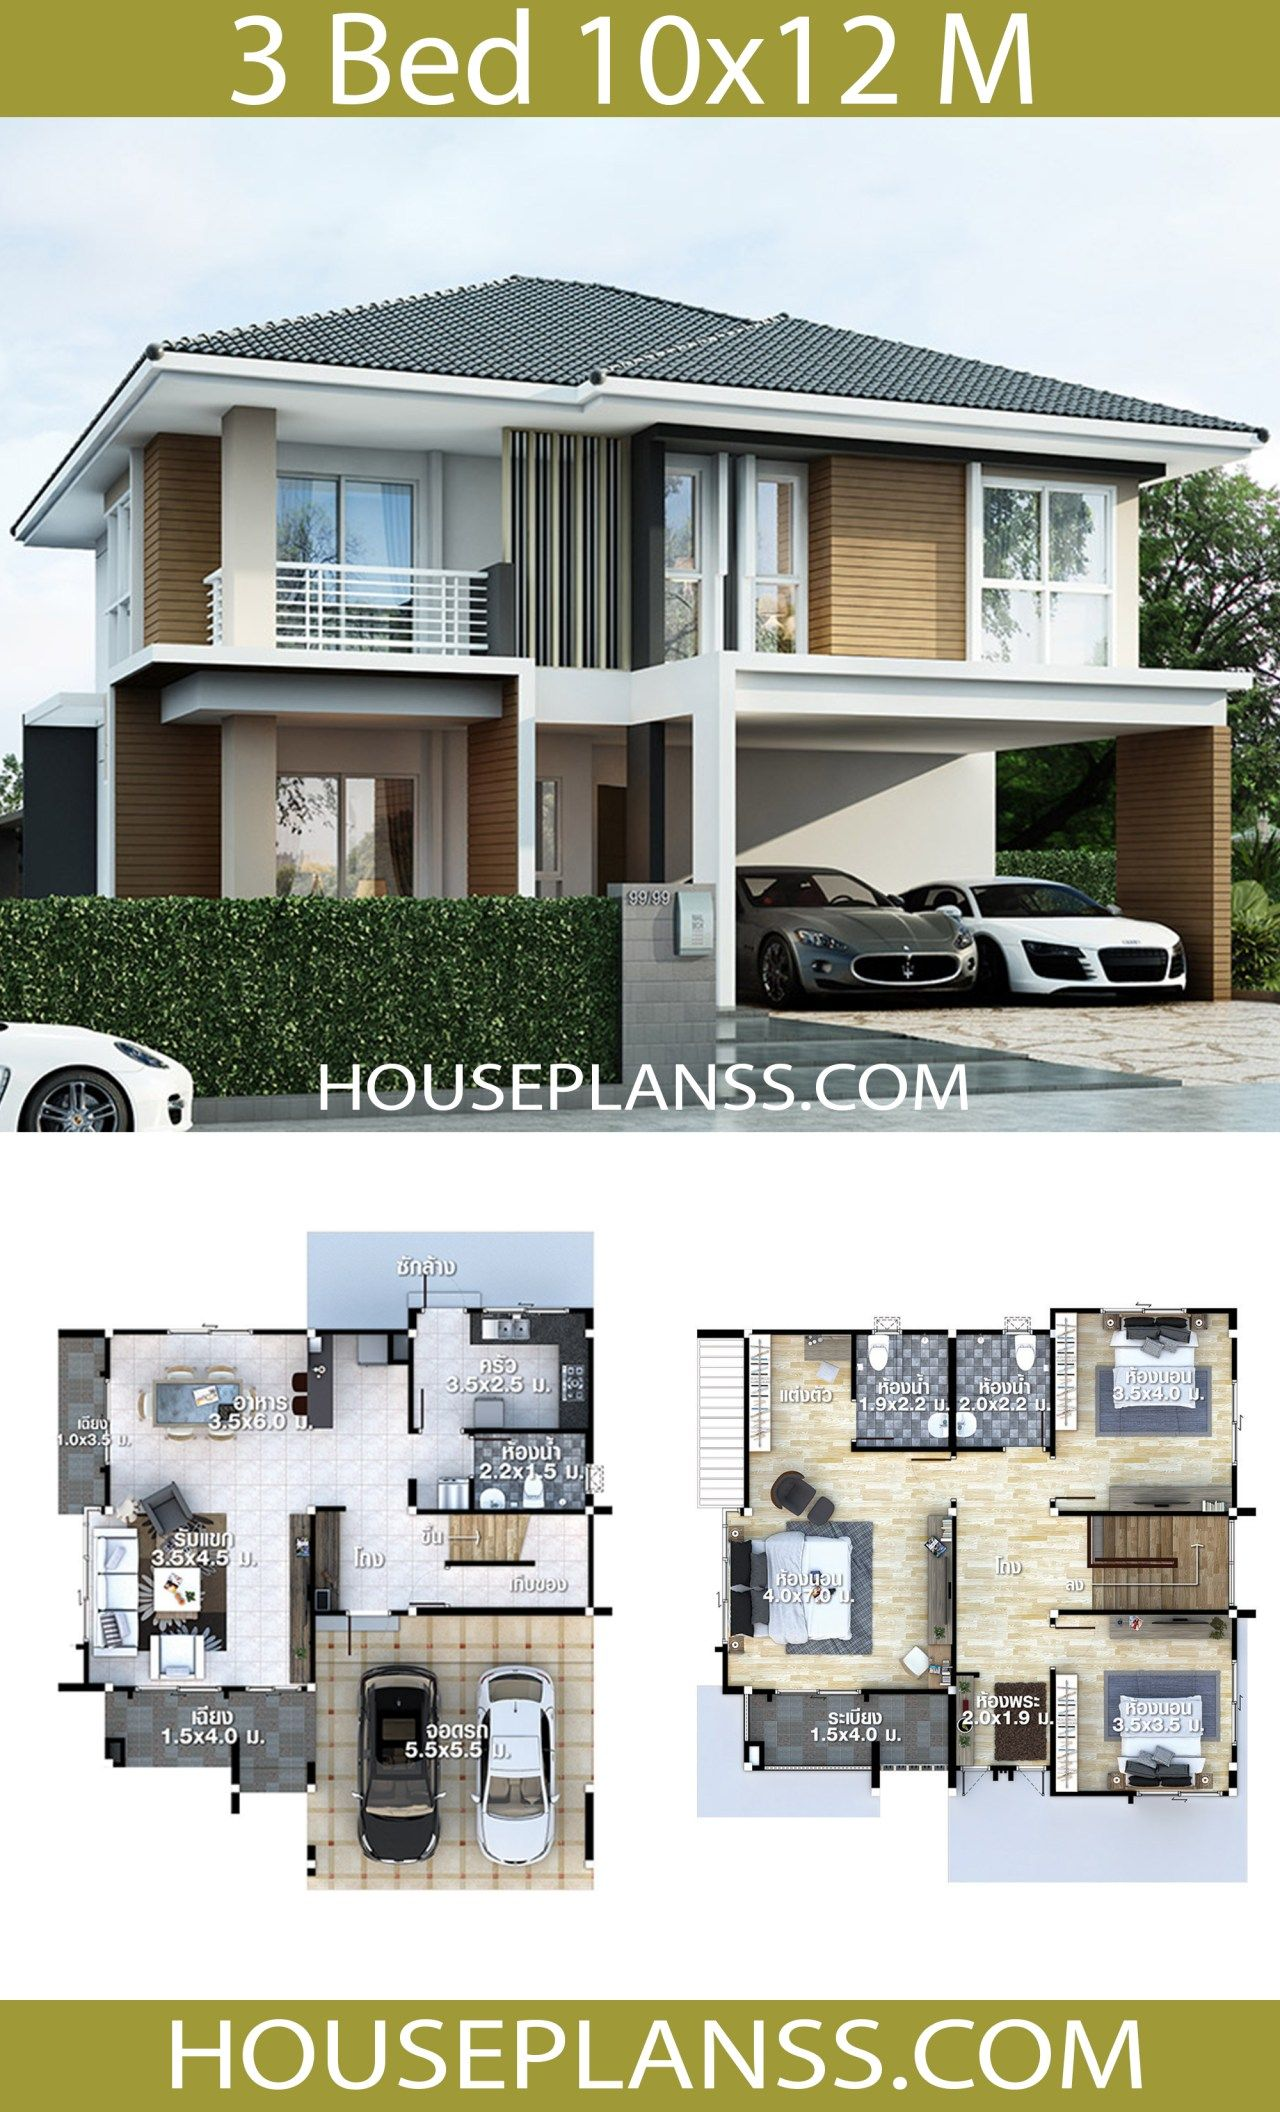 House Design Plans Idea 10x12 With 3 Bedrooms Home Ideas In 2020 Duplex House Design Model House Plan Modern House Plans